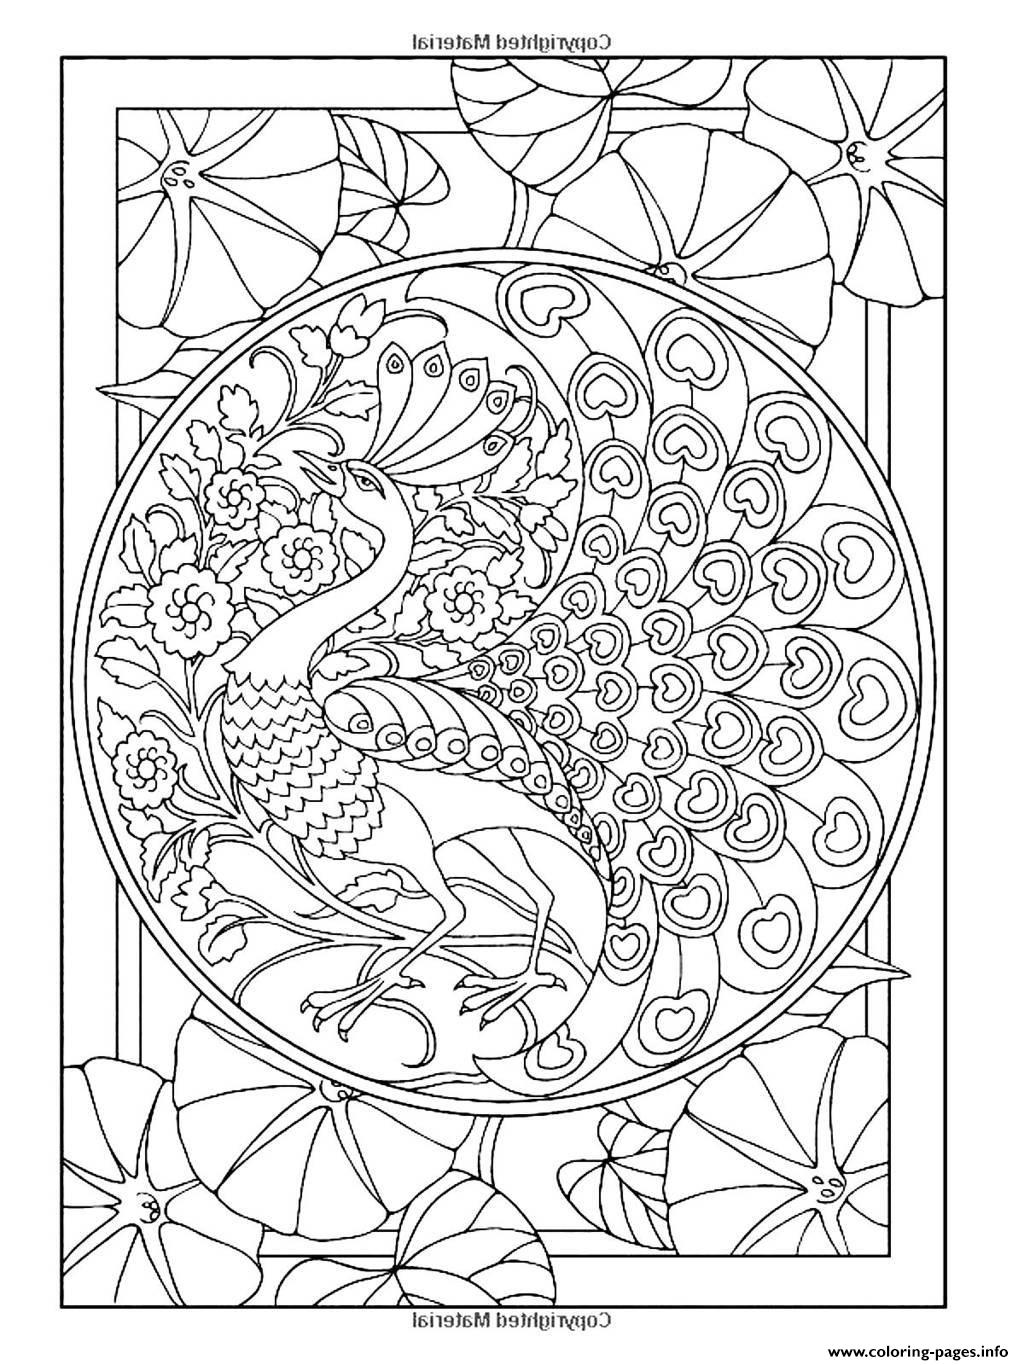 free coloring pages for adults printable free printable abstract coloring pages for adults for pages free printable adults coloring